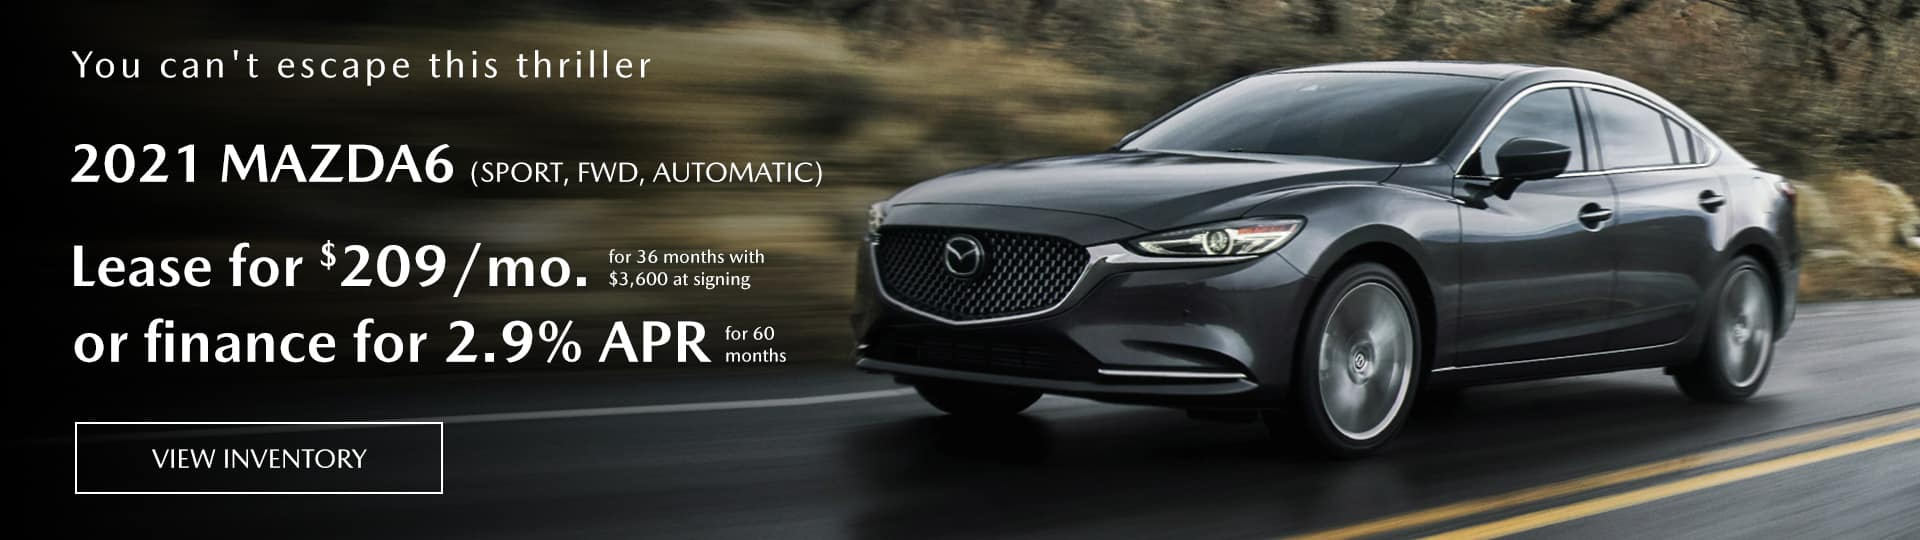 2021 mazda6 (sport, FWD,automatic) lease for $209mo. for 36 months with $3,600 at signing or finance for 2.9% apr for 60 month